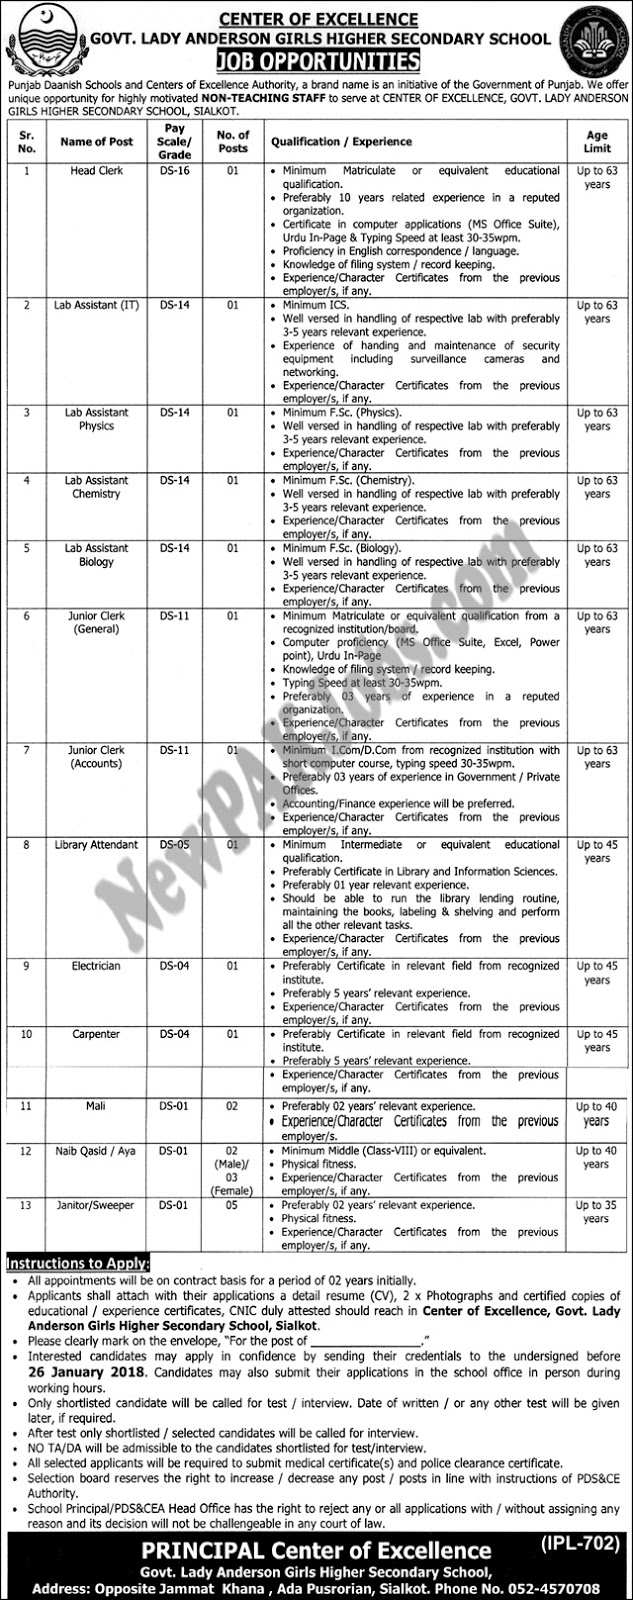 New Jobs announced in Govt Lady Anderson Girls Higher Secondary School Jan 2018